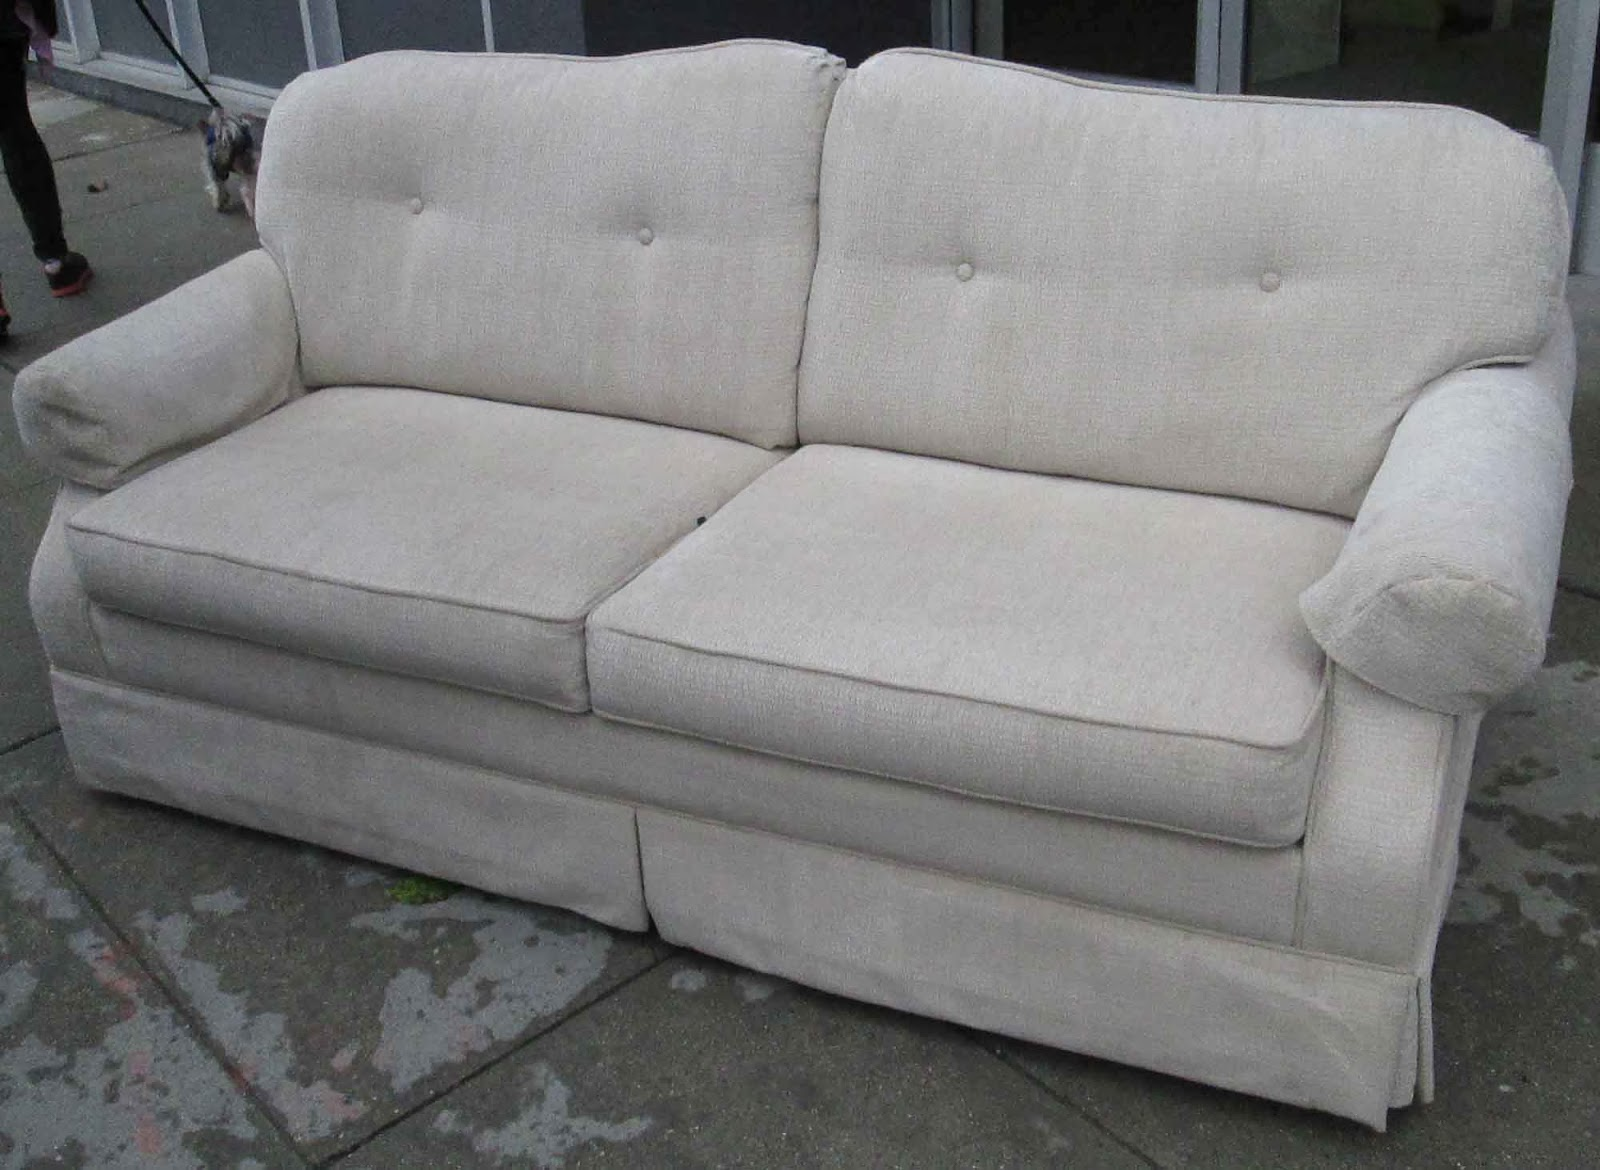 UHURU FURNITURE & COLLECTIBLES: SOLD Small Sofa Sleeper - $150